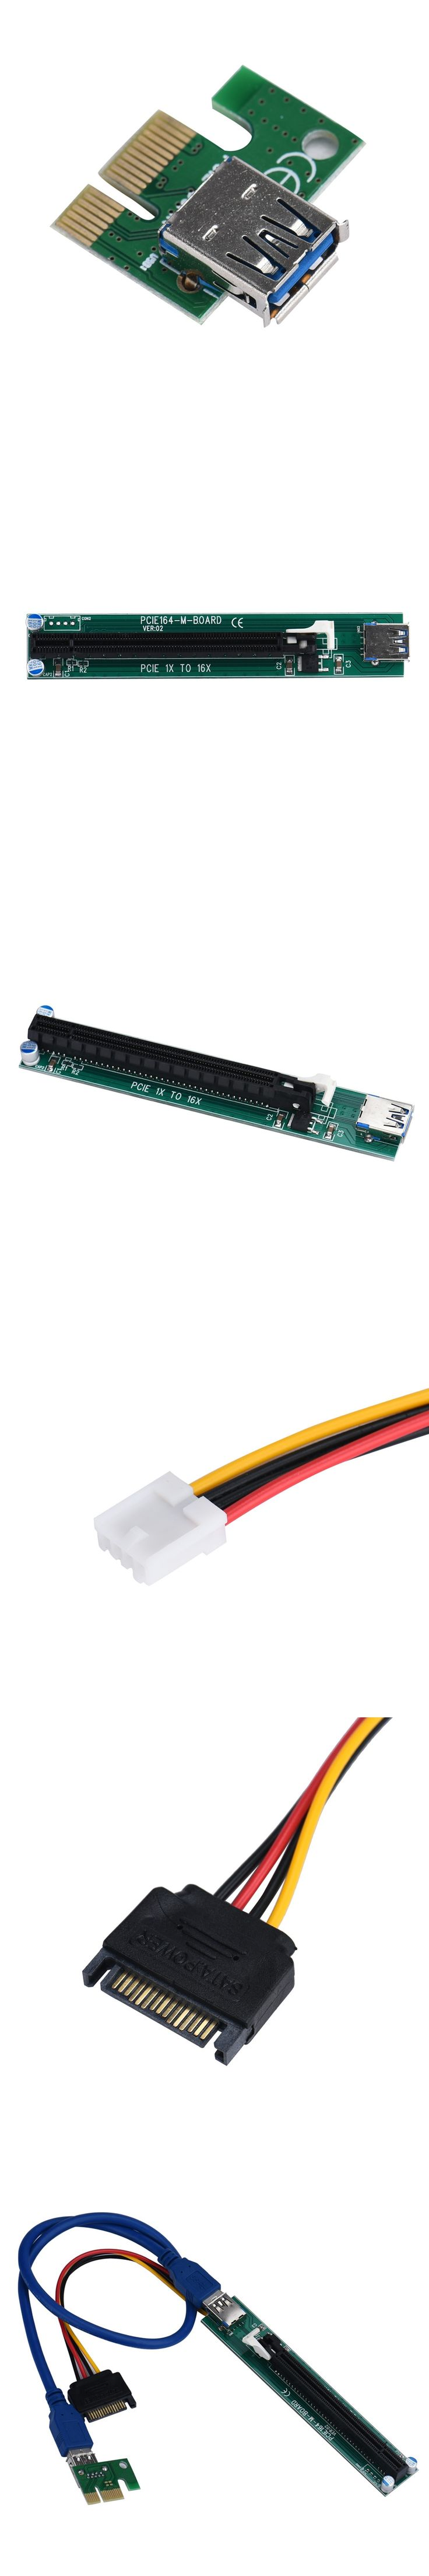 PCI-E Express 1X To 16X Extender Riser Adapter Card With Molex 60CM USB Cable TJ